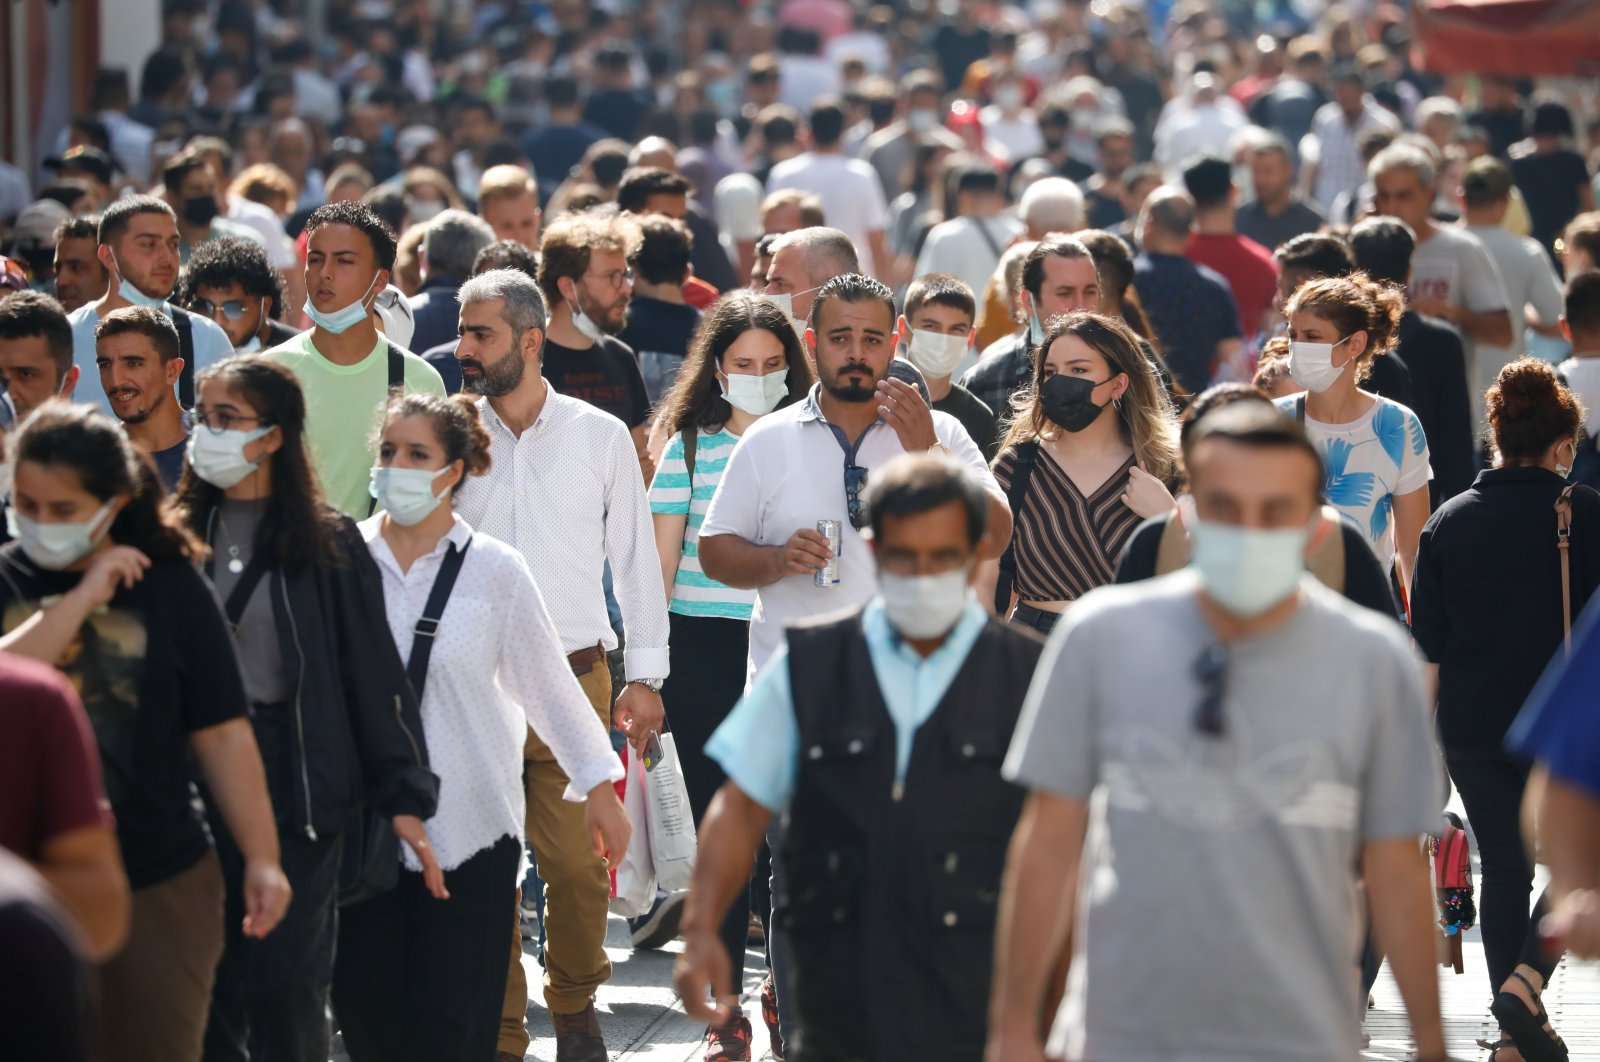 People wearing protective masks against COVID-19 on Istiklal Avenue, in Istanbul, Turkey, Sept. 19, 2021. (DHA PHOTO)